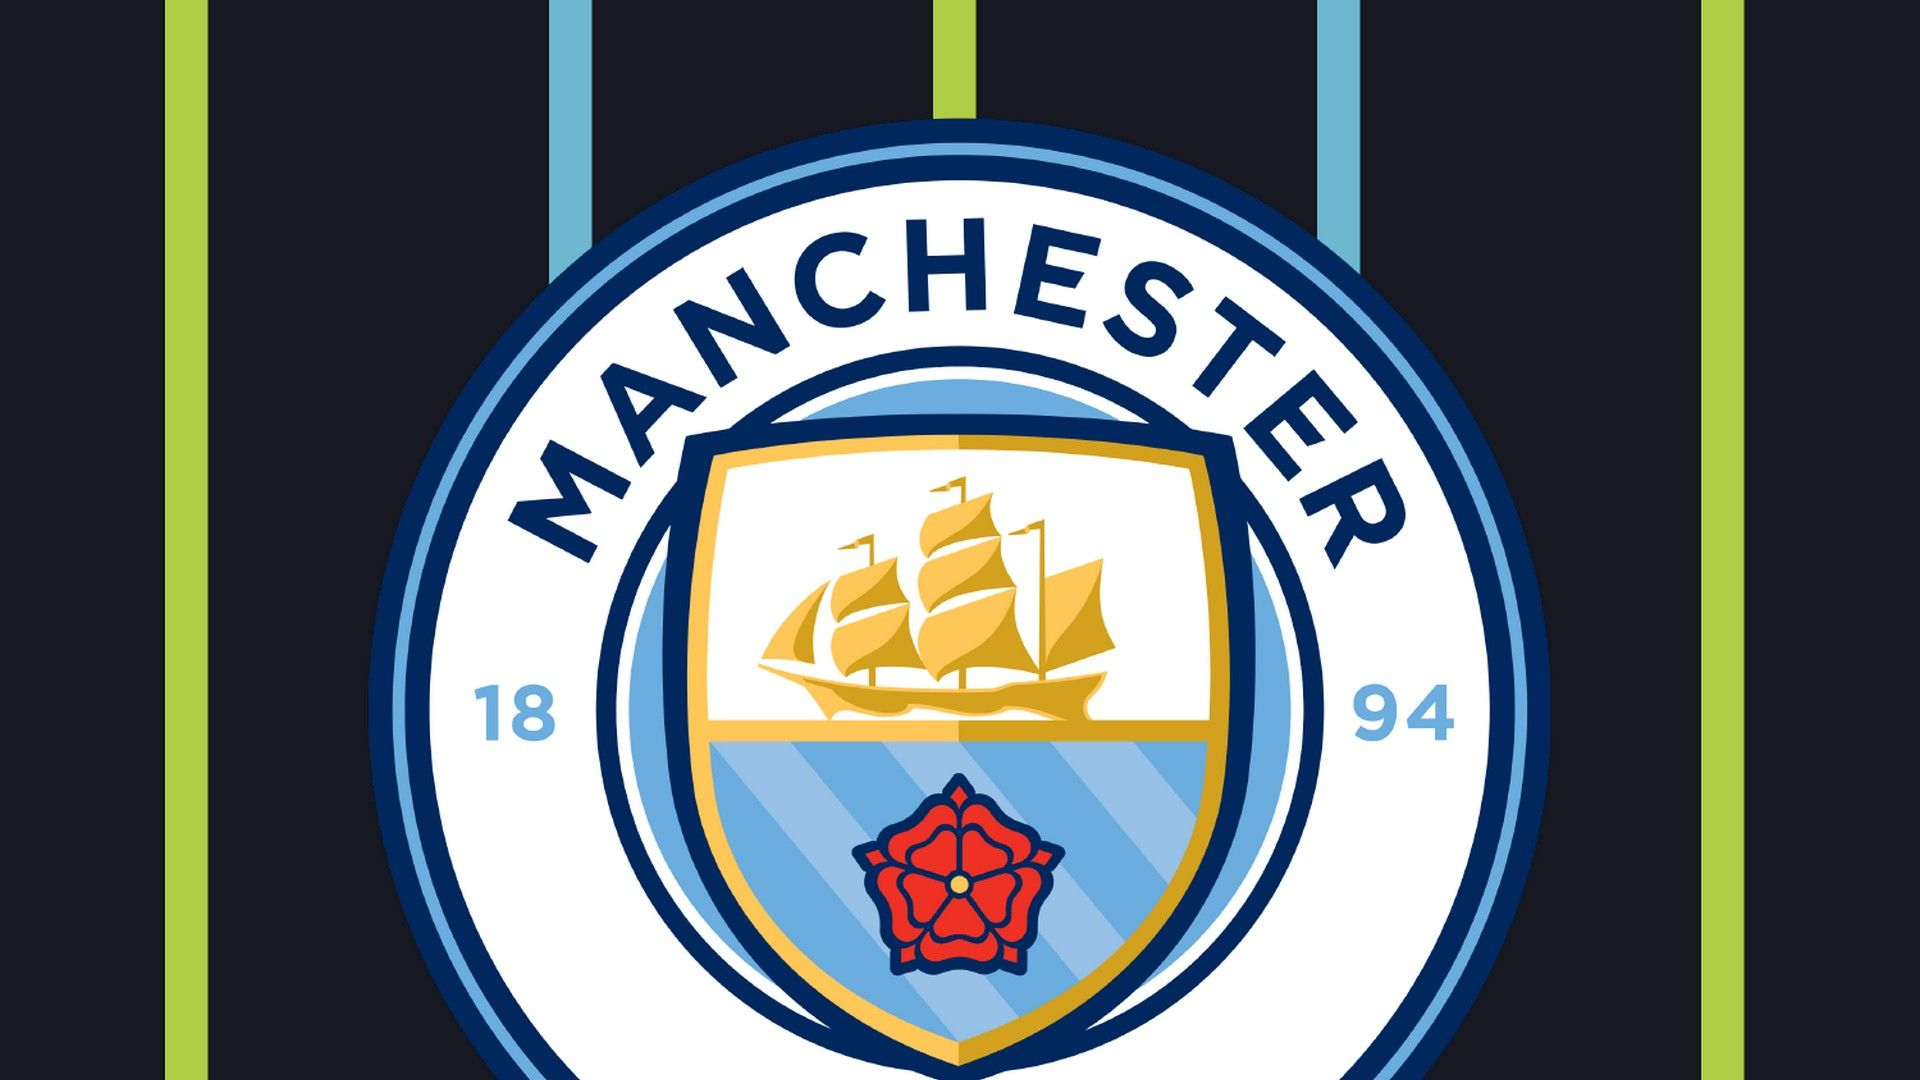 Manchester City Backgrounds Hd Best Football Wallpaper Hd Manchester City Wallpaper City Wallpaper Manchester City Logo